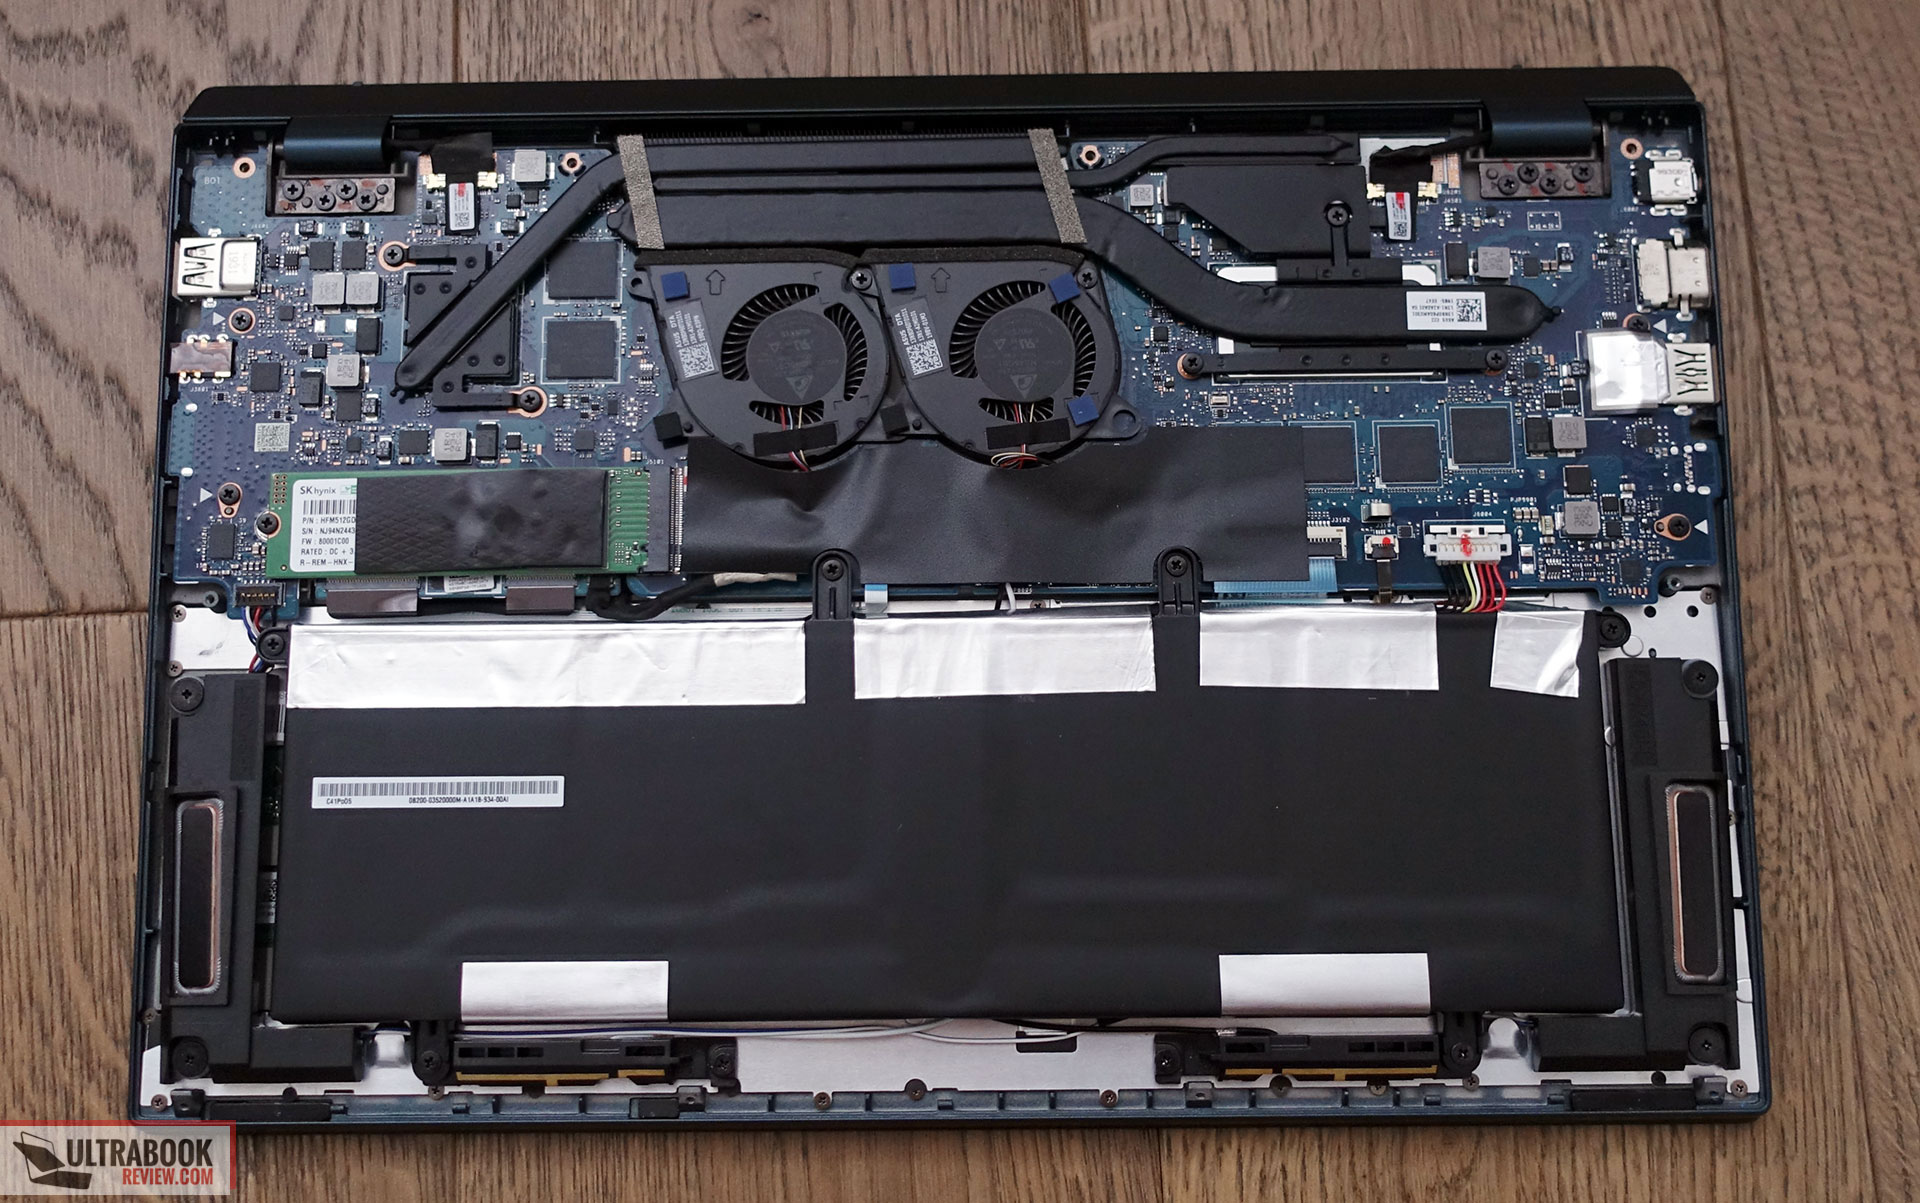 Asus ZenBook Duo UX481FL internals and disassembly